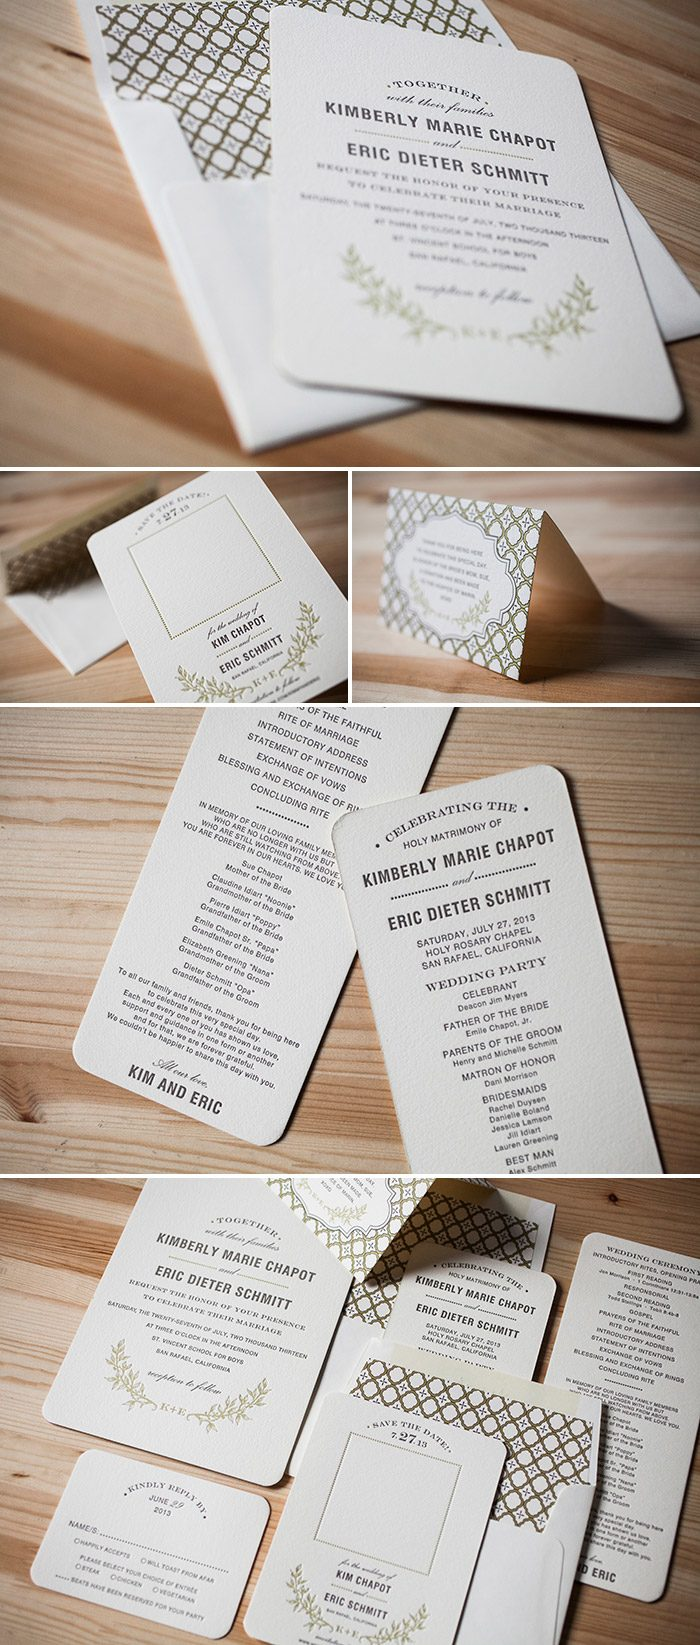 Branch wedding invitations by Bella Figura in rustic chic letterpress